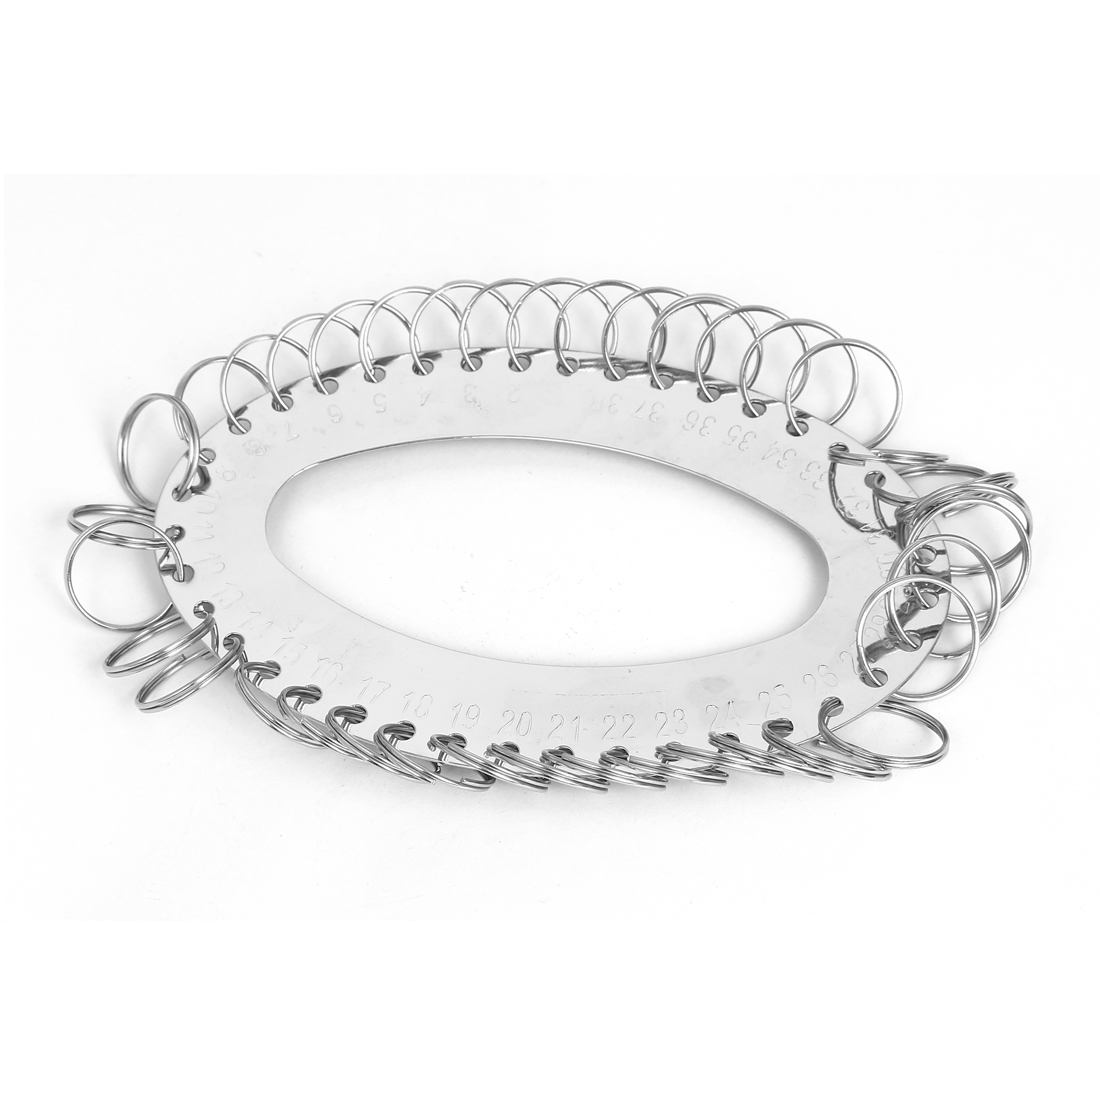 Metal Oval Shaped 38 Separable Split Rings Key Chain Organizer Silver Tone